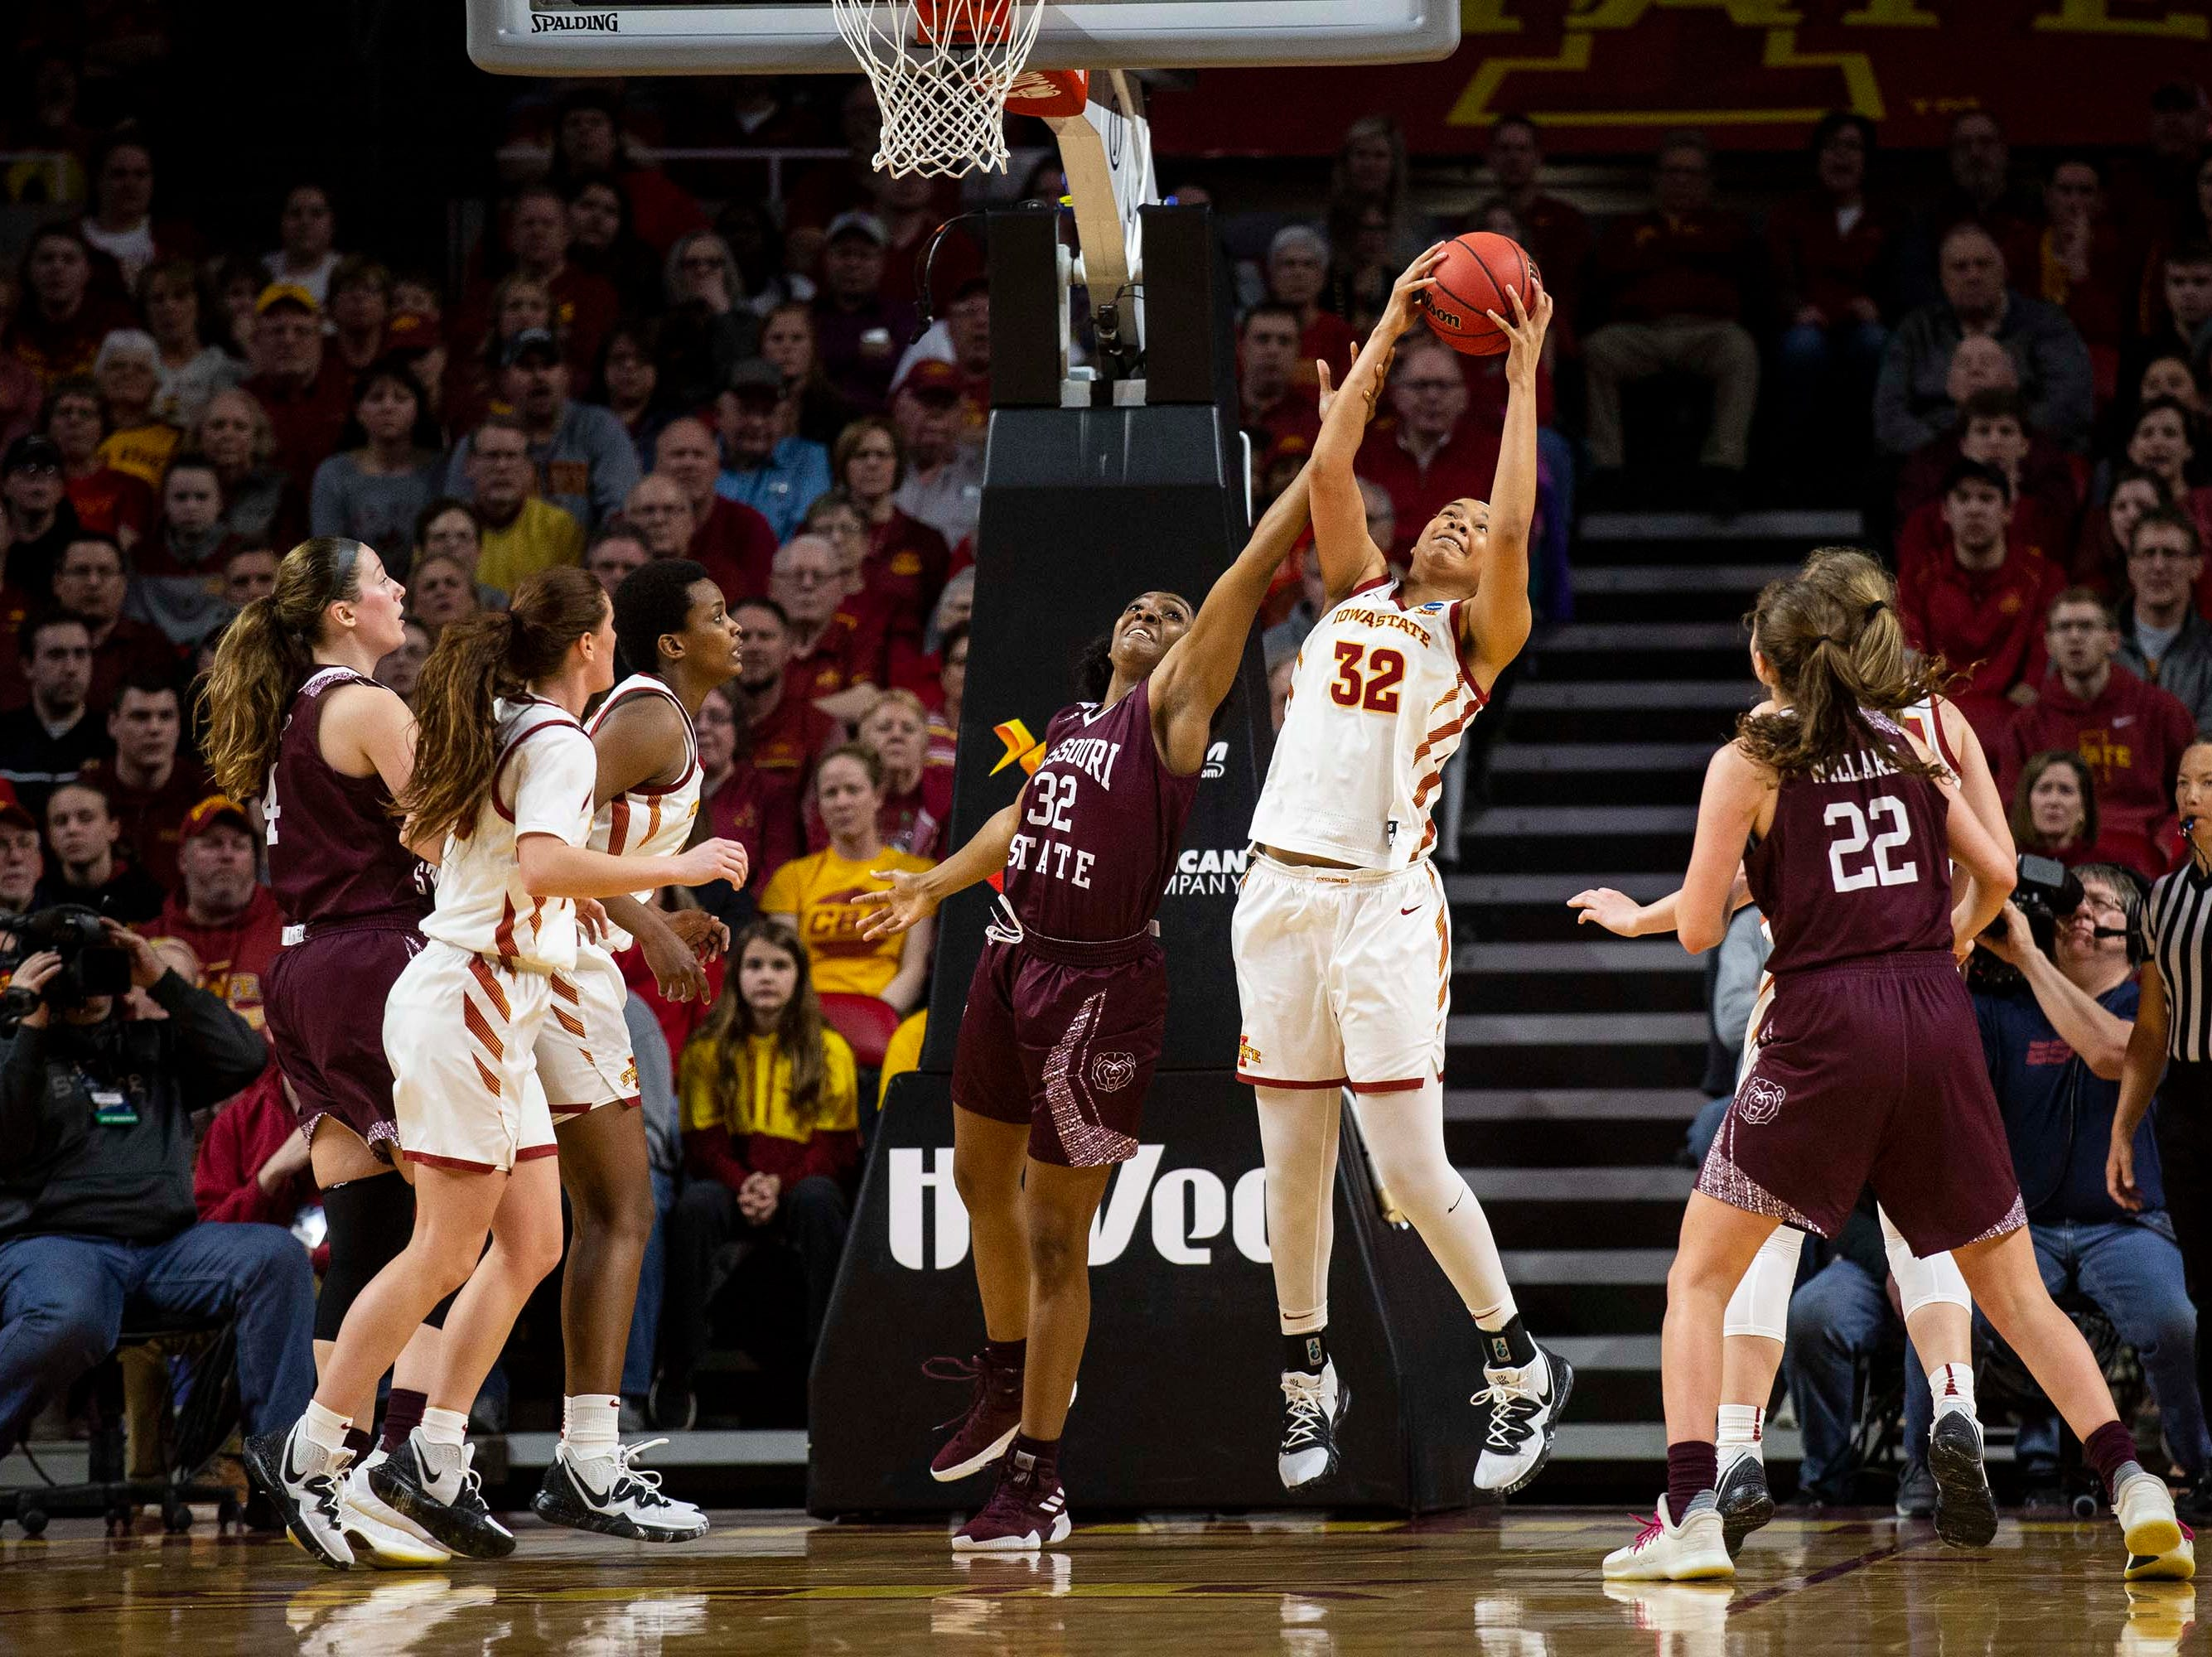 Missouri State's Jasmine Franklin and Iowa State's Meredith Burkhall reach for a rebound during the NCAA Tournament second-round match-up between Iowa State and Missouri State on Monday, March 25, 2019, in Hilton Coliseum, in Ames, Iowa.